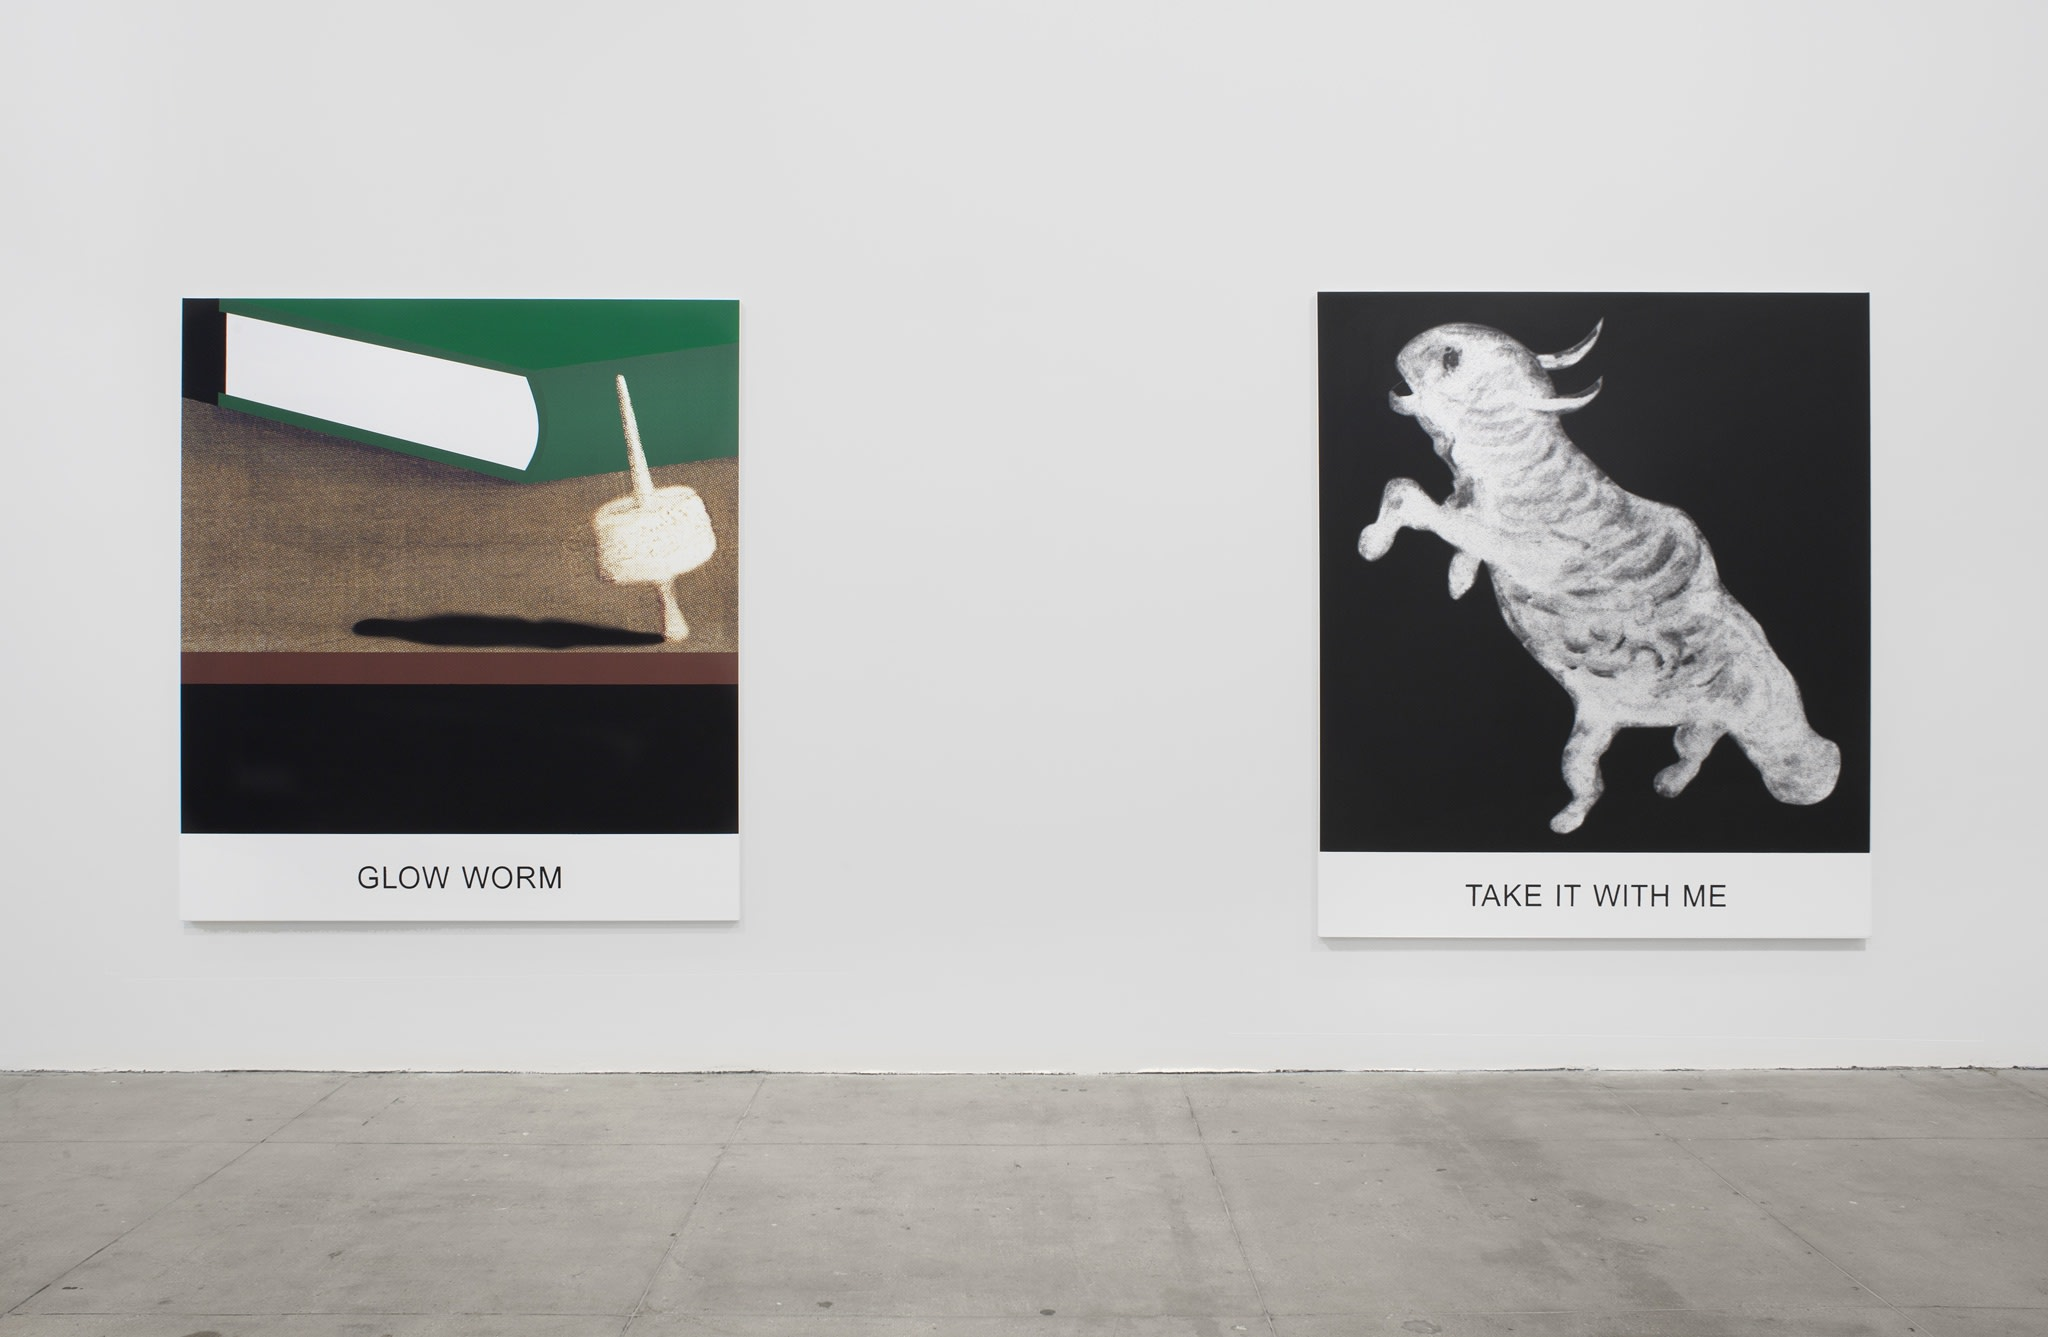 Two prints on canvas: 1-a green book behind an impaled marshmallow, 2-a white hybrid animal